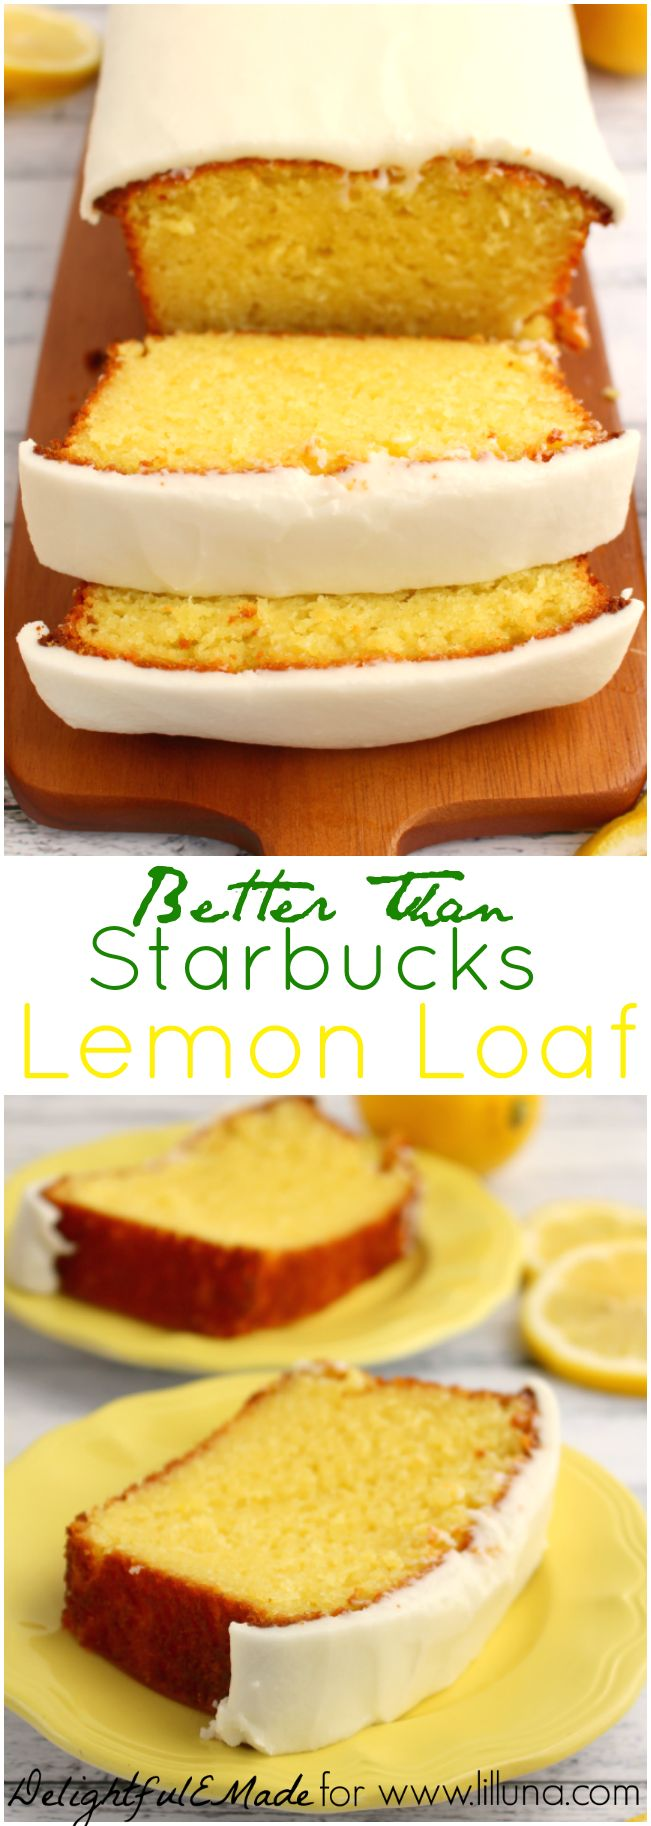 Best 20+ Starbucks recipes ideas on Pinterest